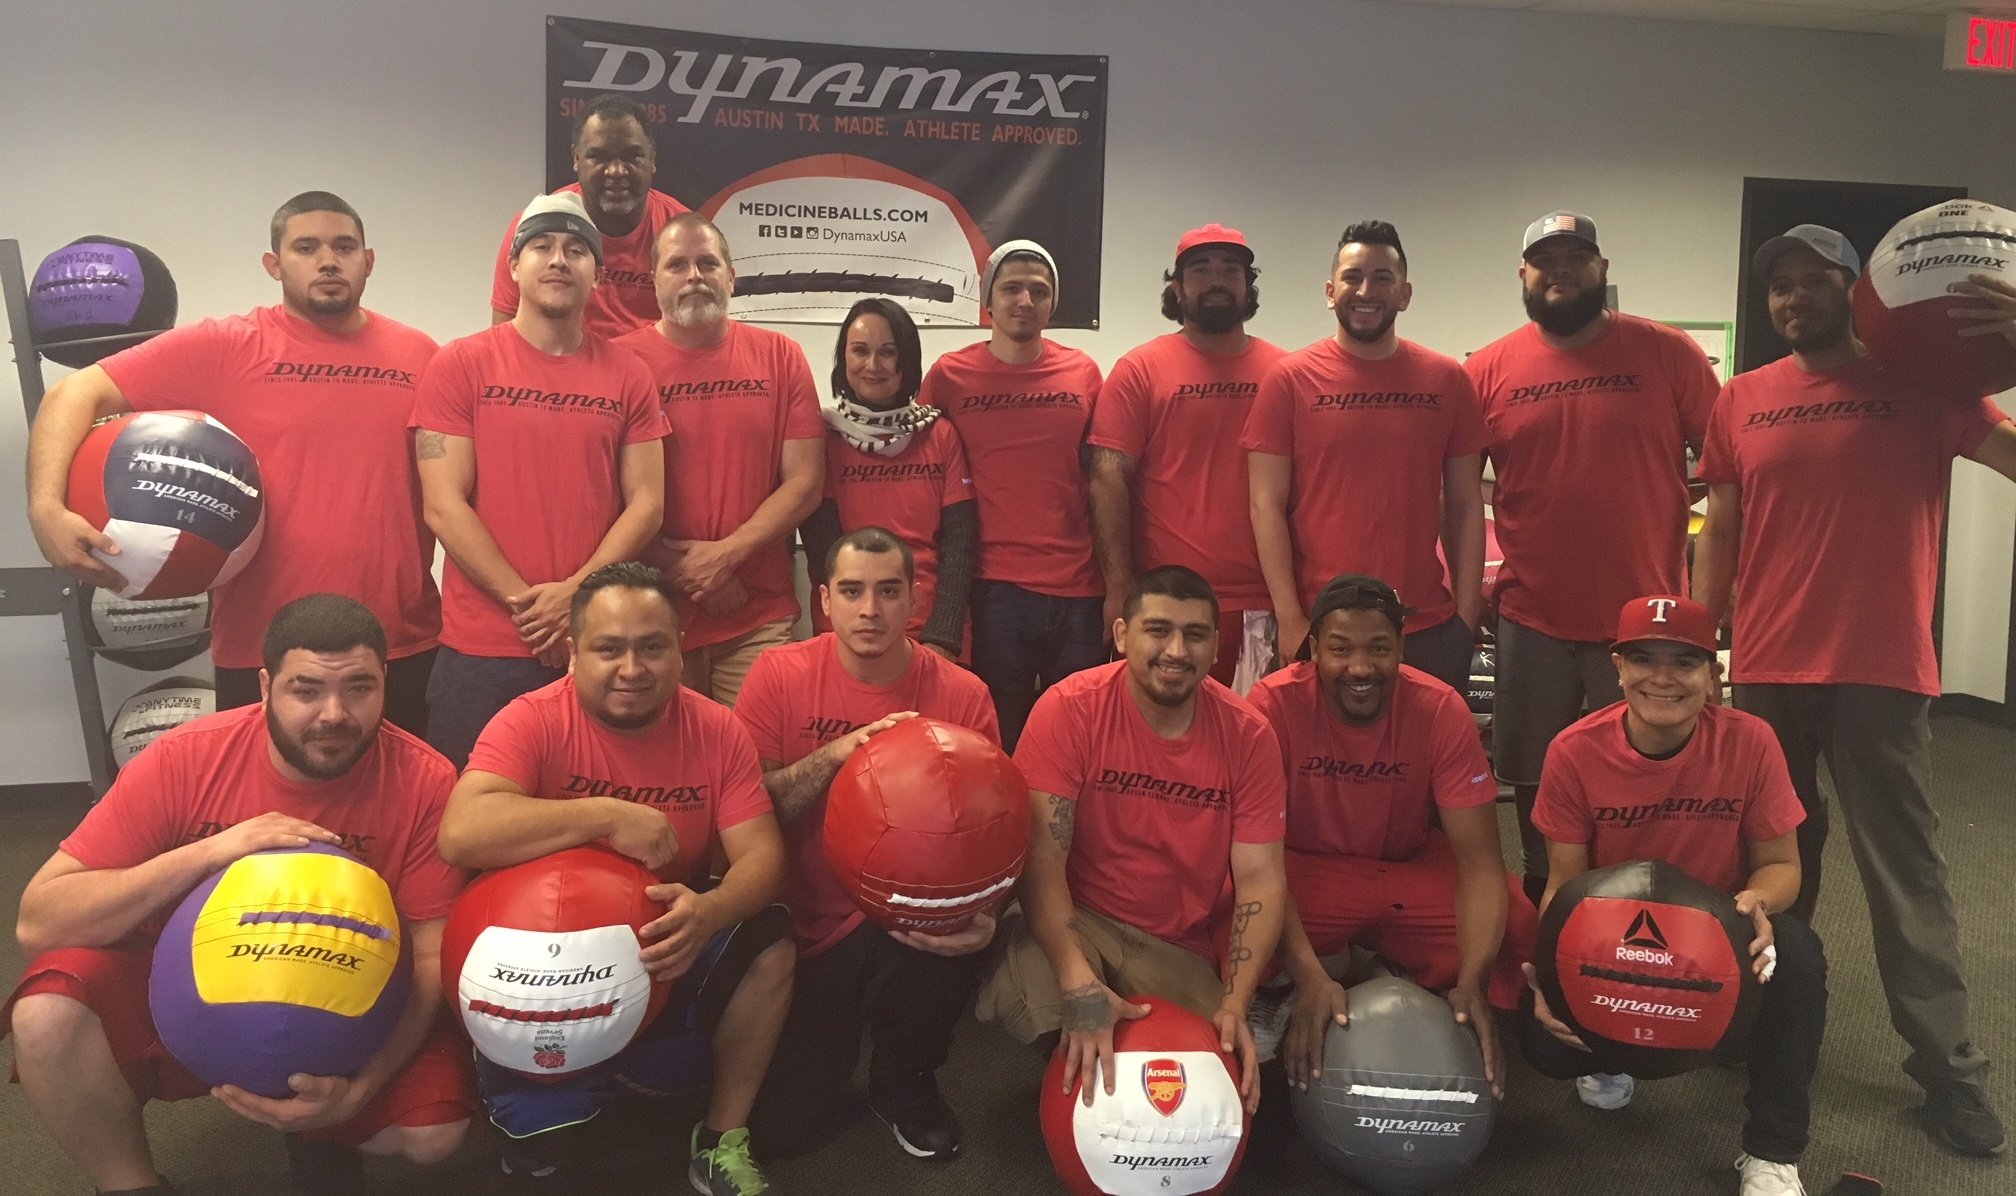 dynamax team